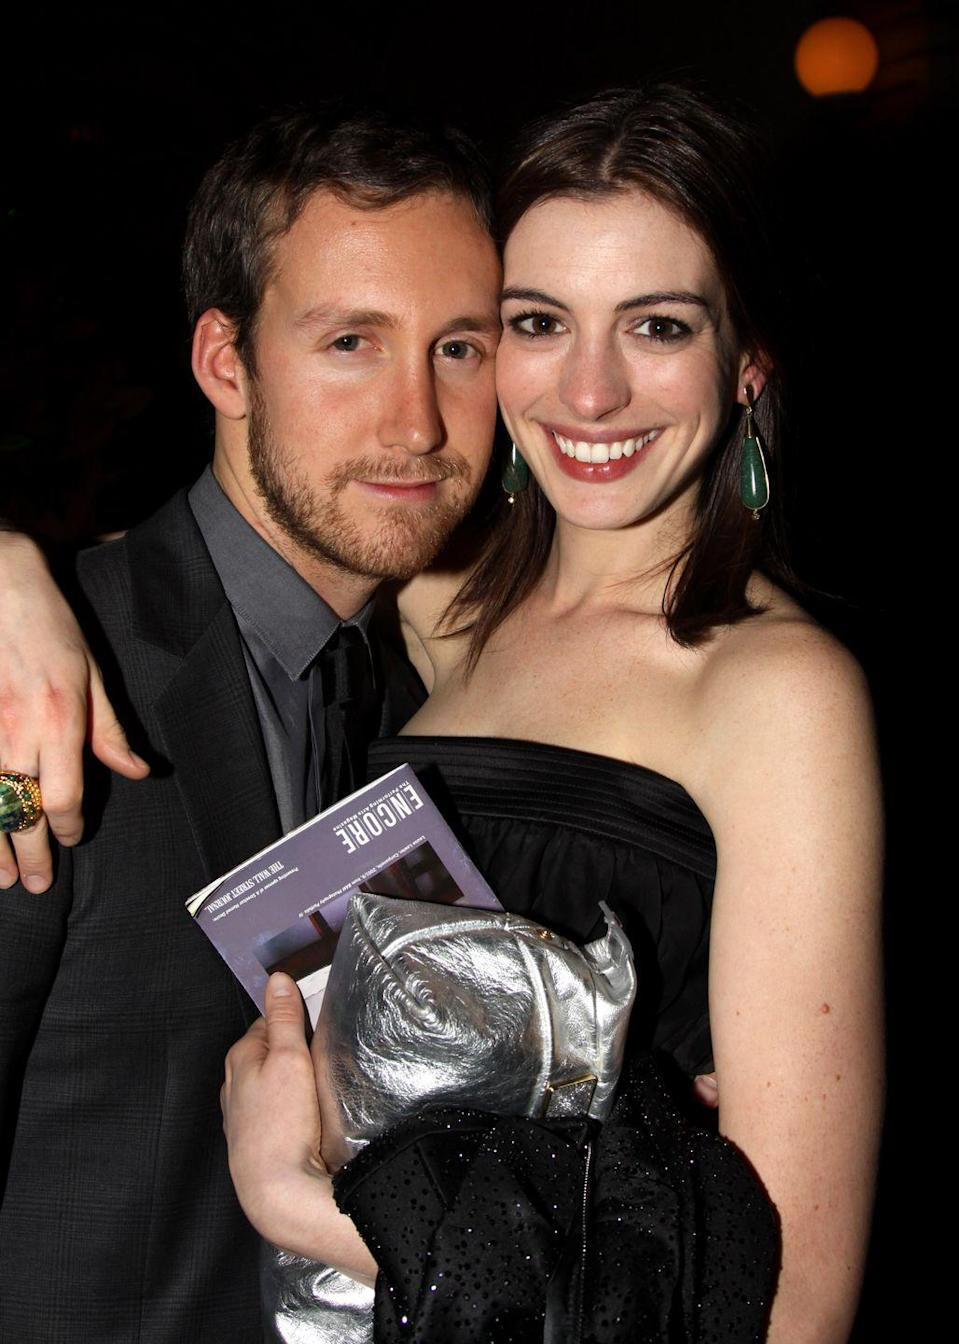 "<p>The couple were <a href=""https://www.bustle.com/articles/126326-how-did-anne-hathaway-and-adam-shulman-first-meet-their-story-is-pretty-close-to-love"" rel=""nofollow noopener"" target=""_blank"" data-ylk=""slk:introduced"" class=""link rapid-noclick-resp"">introduced</a> by a mutual friend at the Palm Springs Film Festival in 2008. The two have been married since 2012 and have a son together, so I guess you could say things worked out nicely. Though Hathaway has said she only married Shulman because she ""<a href=""https://people.com/movies/anne-hathaway-jokes-that-she-only-married-adam-shulman-because-she-couldnt-get-emily-blunt/"" rel=""nofollow noopener"" target=""_blank"" data-ylk=""slk:couldn't get Emily"" class=""link rapid-noclick-resp"">couldn't get Emily</a> [Blunt].""</p>"